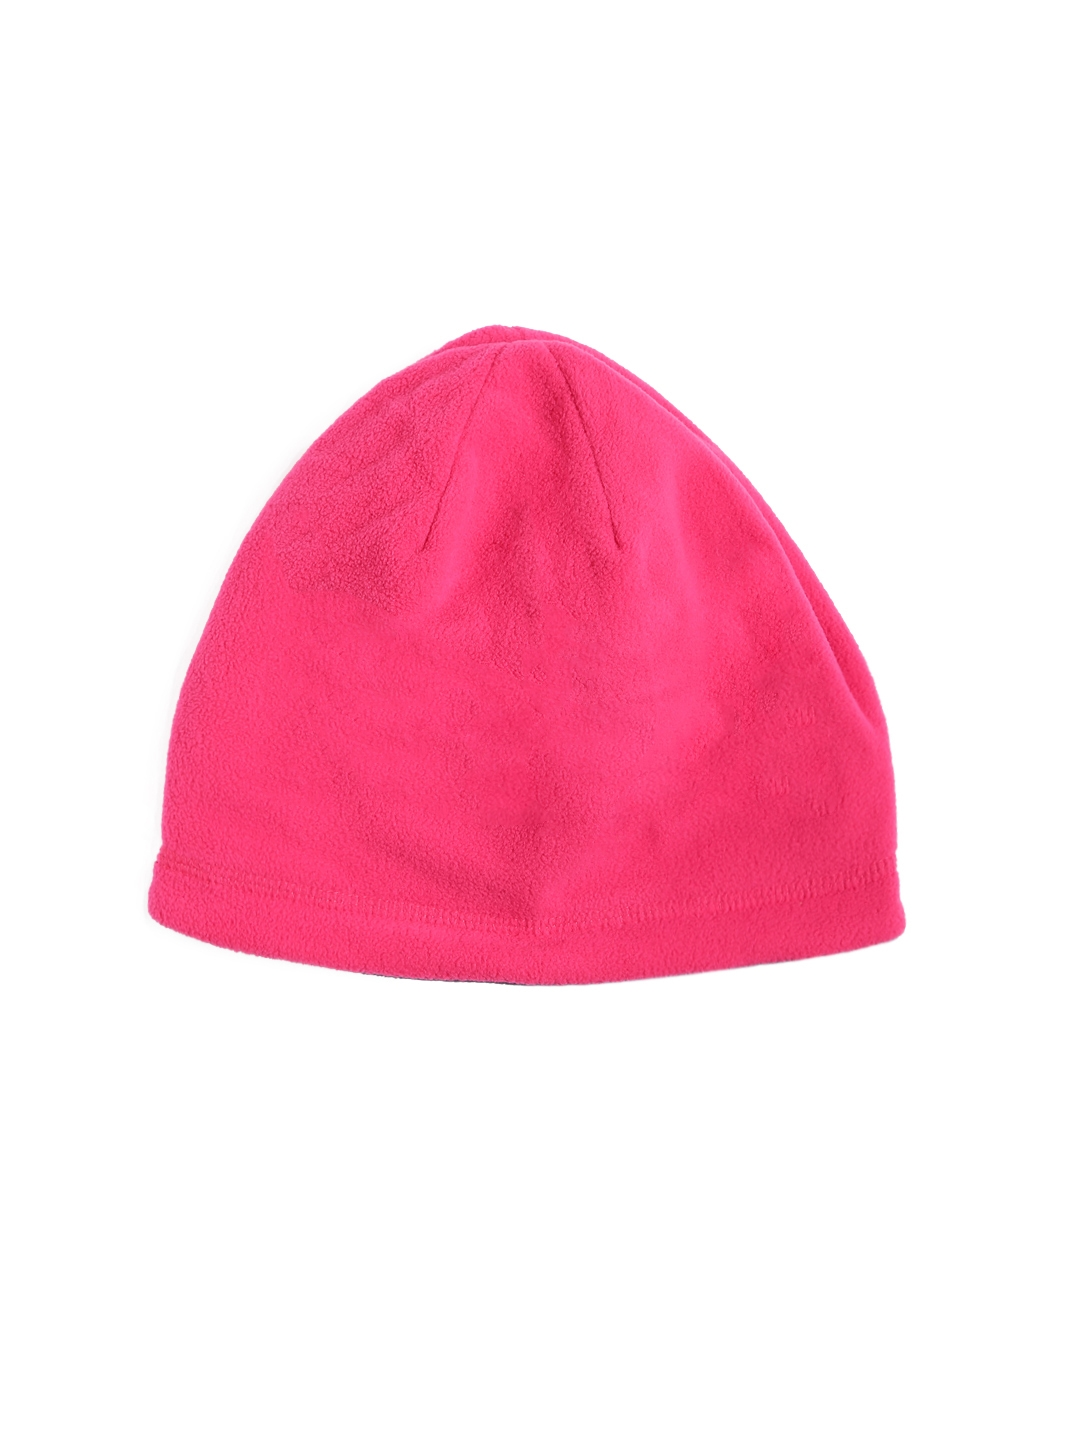 a81a222dd92 Buy Puma Unisex Pink Solid ACTIVE Fleece Beanie - Caps for Unisex ...